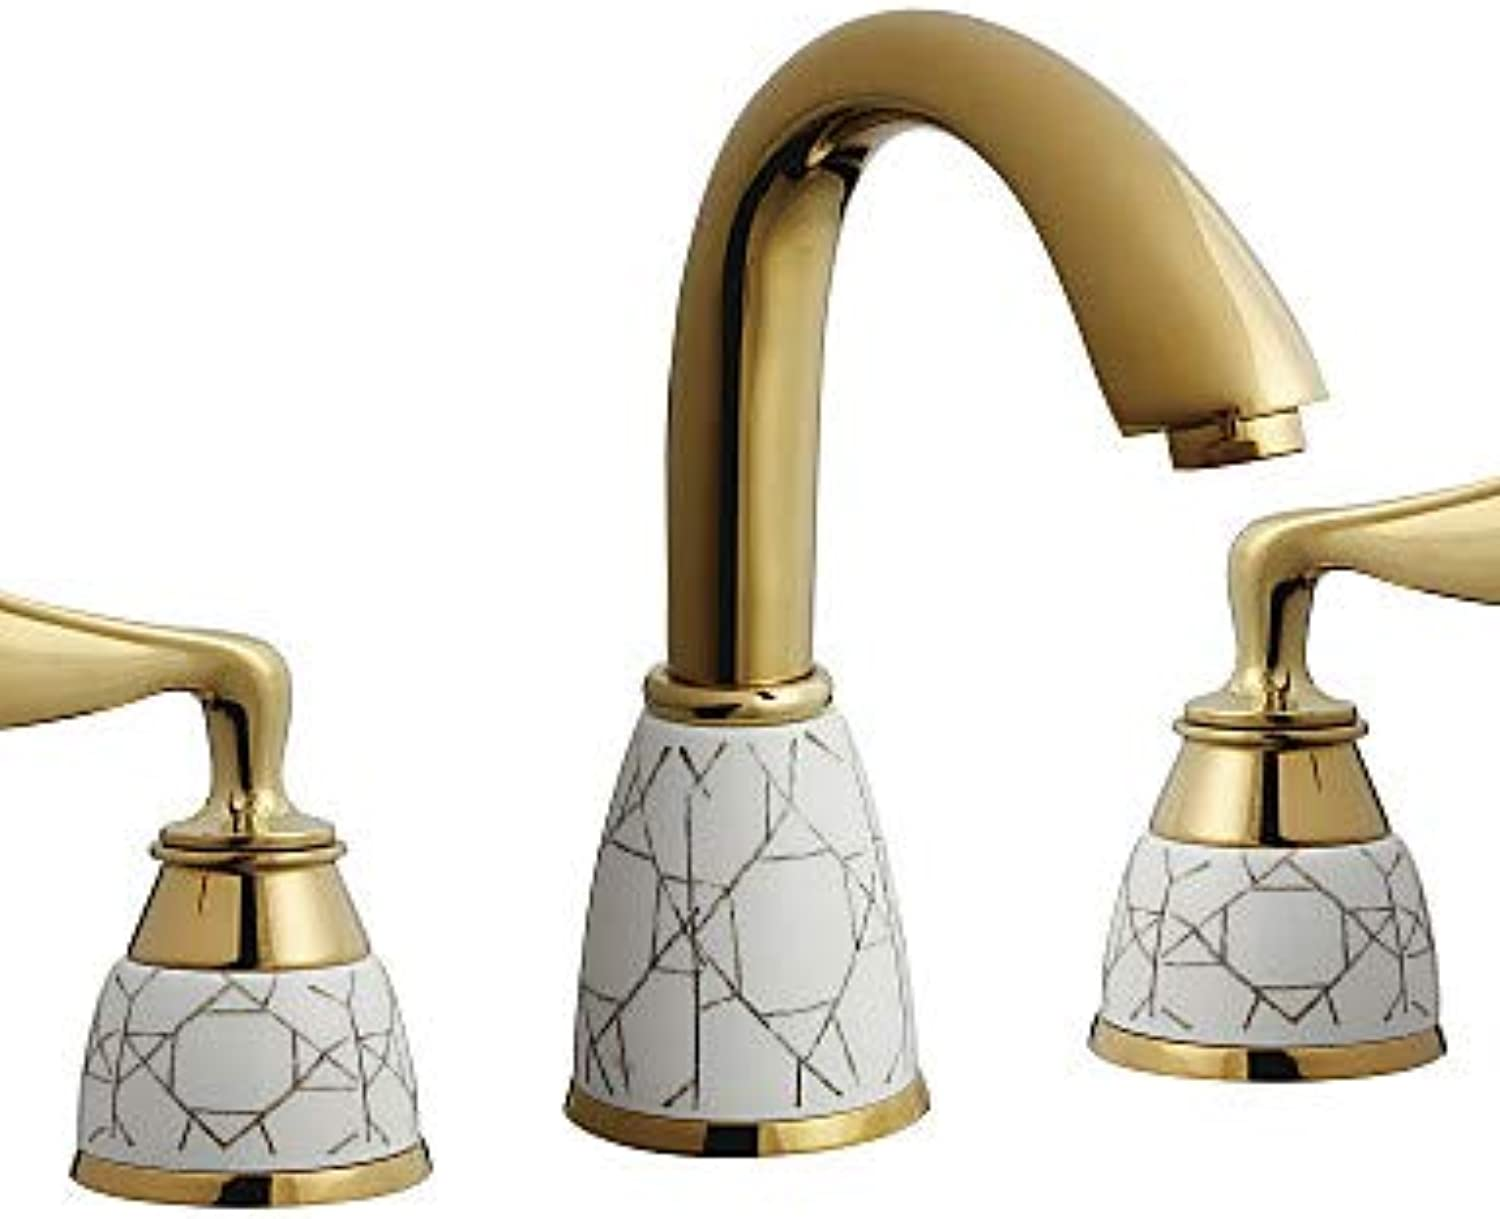 Mainstream home LPZSQ Tap Antique Ti-PVD Finish Brass Three Hole Two Handle Bathroom Sink Faucet  467